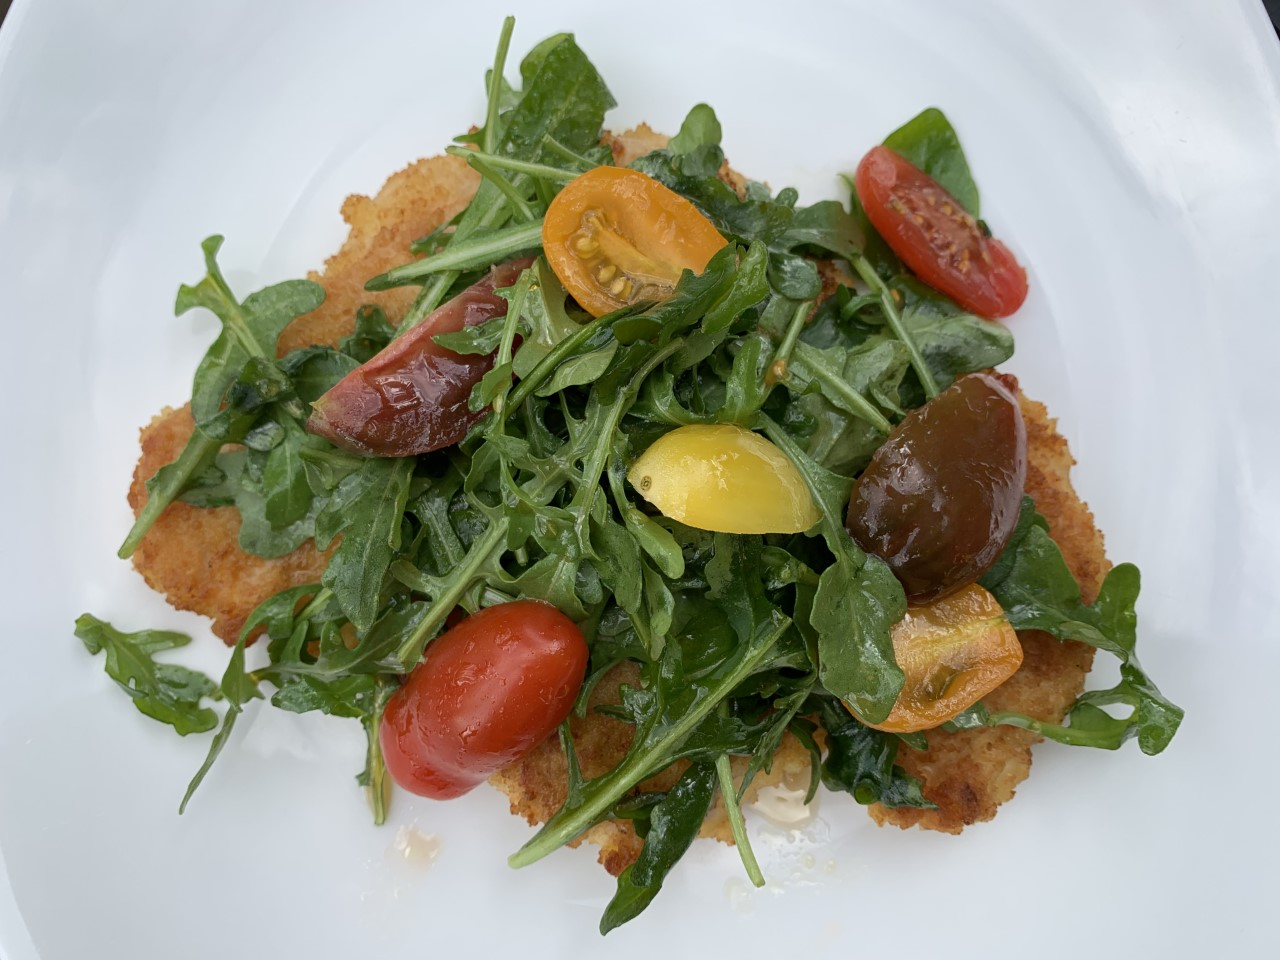 Chicken Milanese is thinly coated chicken breasts sauteed then topped with an arugula and tomato salad